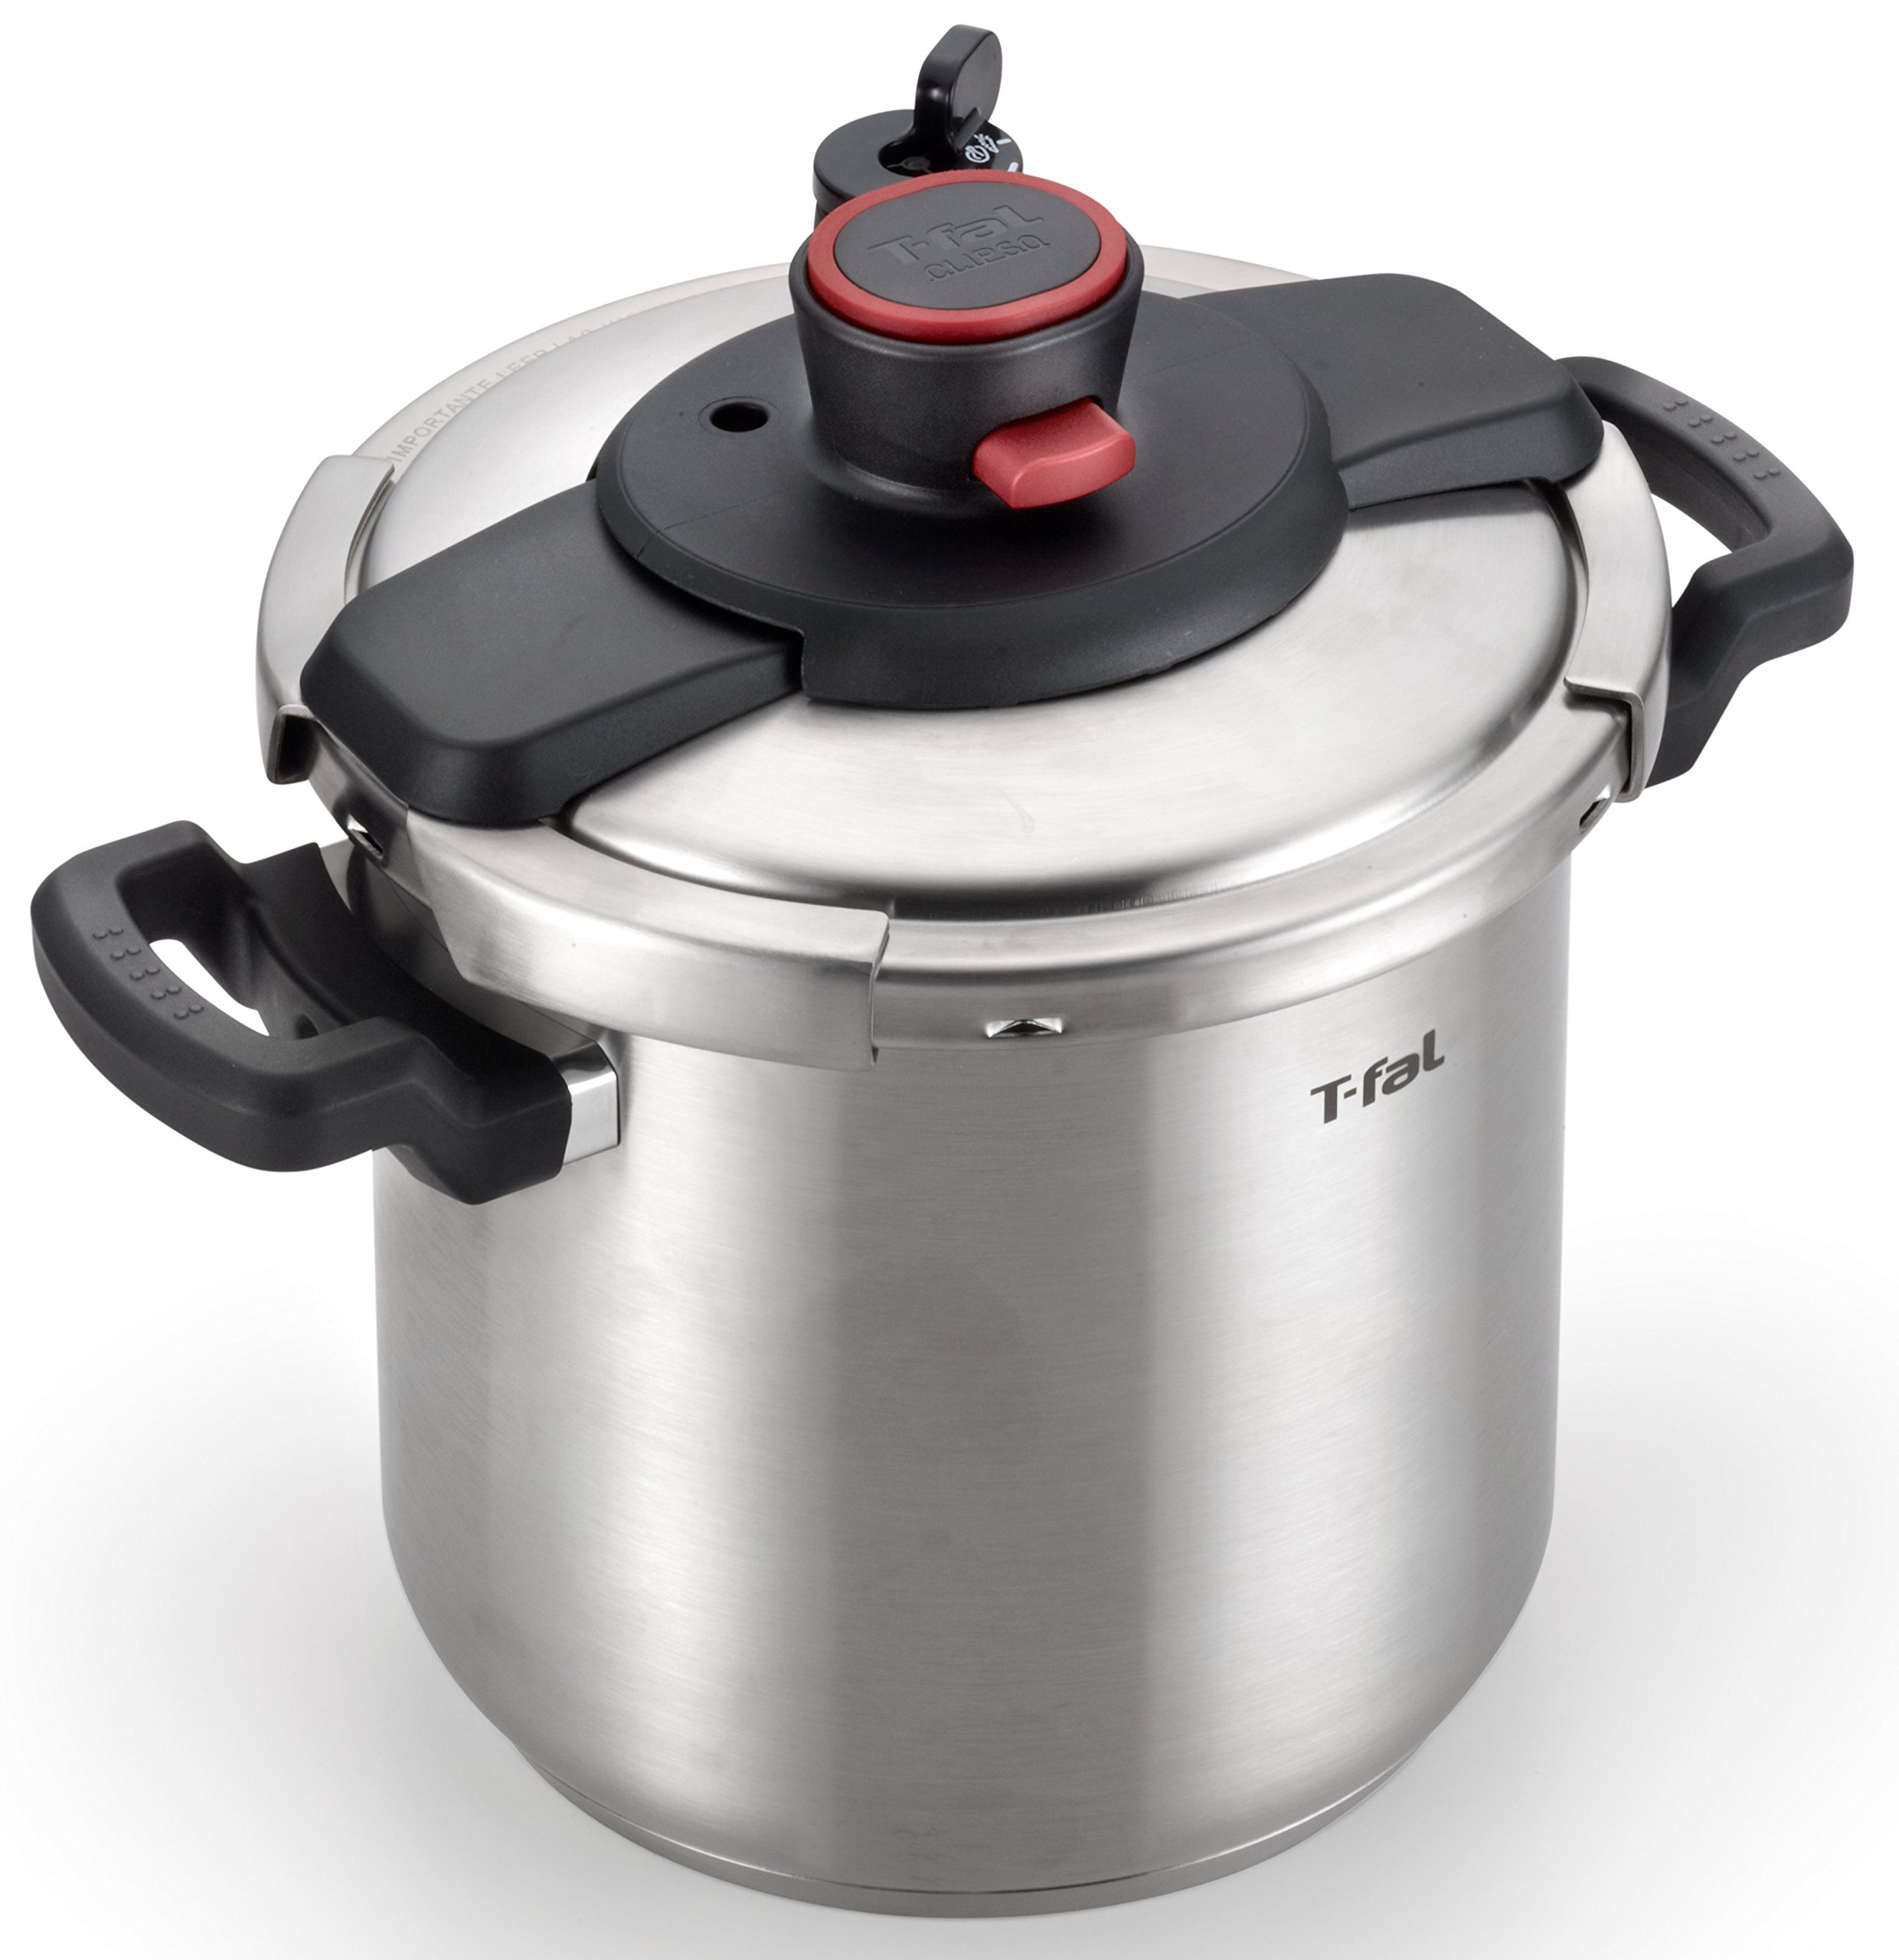 T-fal P45009 Clipso Stainless Steel Dishwasher Safe PTFE PFOA and Cadmium Free 12-PSI Pressure Cooker Cookware, 8-Quart, Silver by T-fal (Image #2)